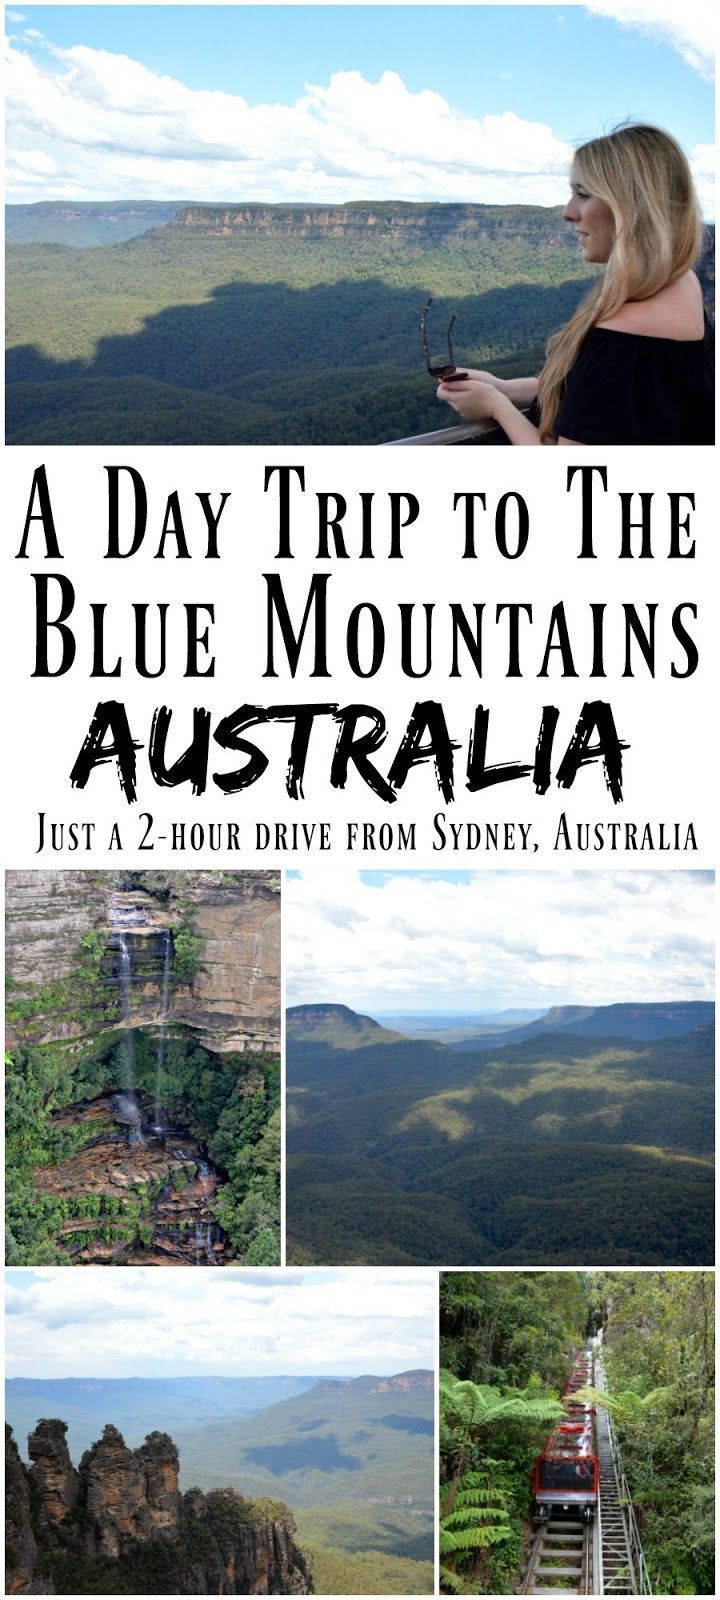 PIN FOR LATER: Find out how you can visit the Blue Mountains in Australia - they're just a two hour drive from Sydney in New South Wales. The Blue Mountains are breathtakingly beautiful and well worth visiting!